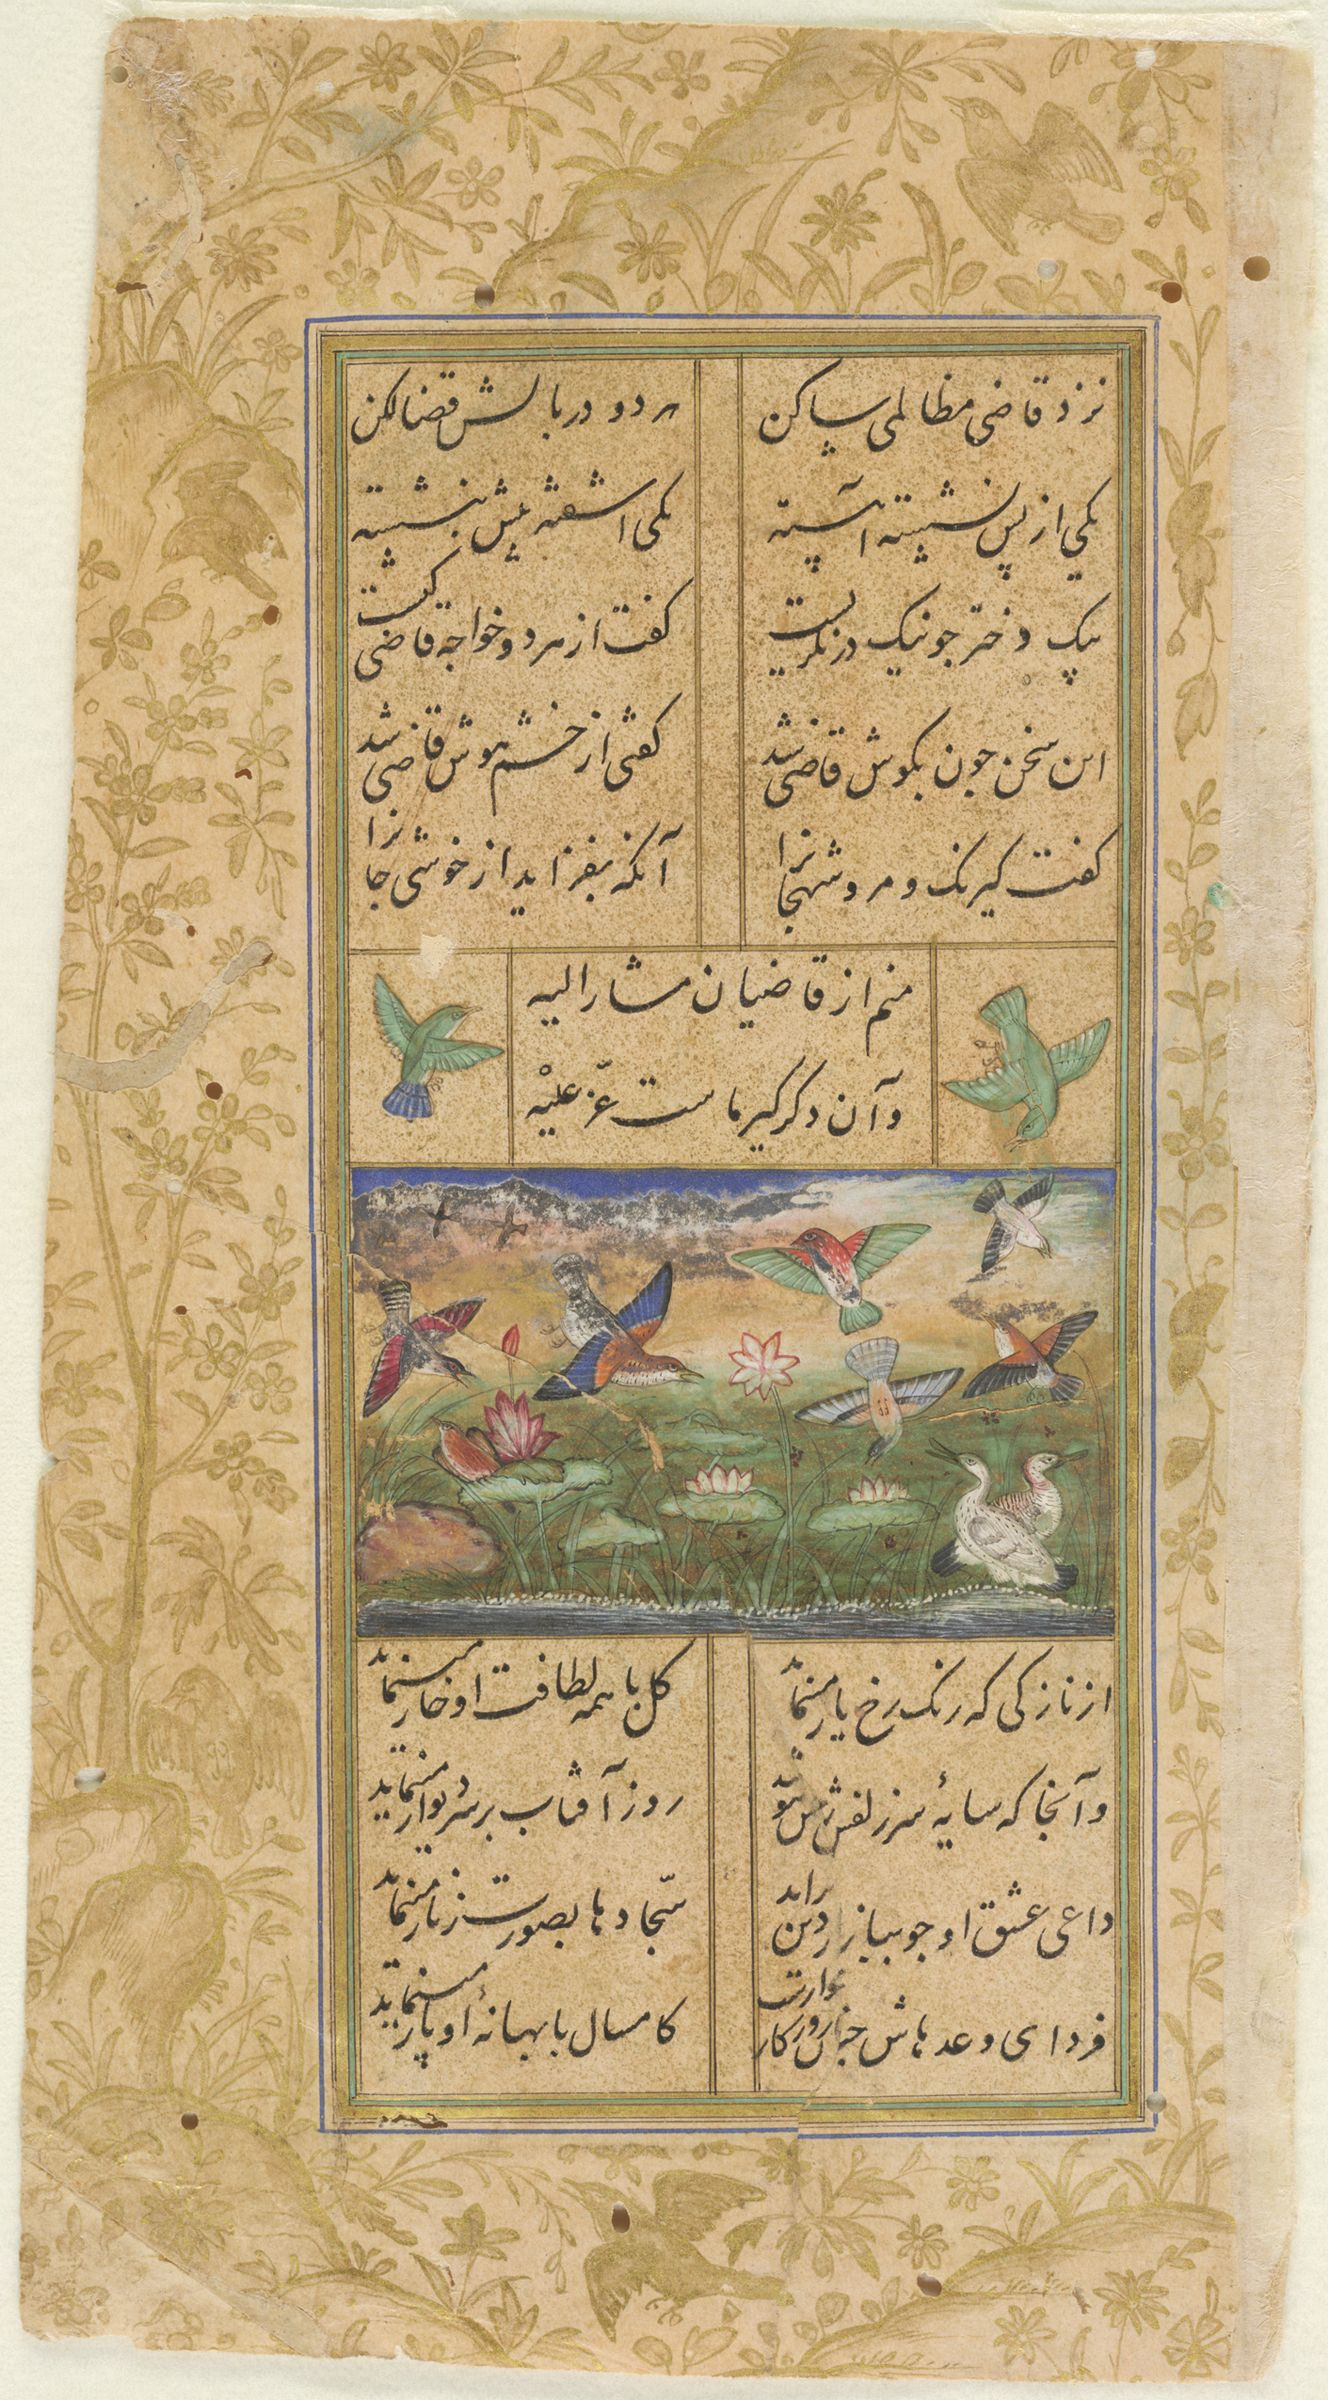 Birds And Lotus (Painting, Recto, Text, Verso), Folio 336 From A Manuscript Of The Divan (Collection Of Works) Of Anvari